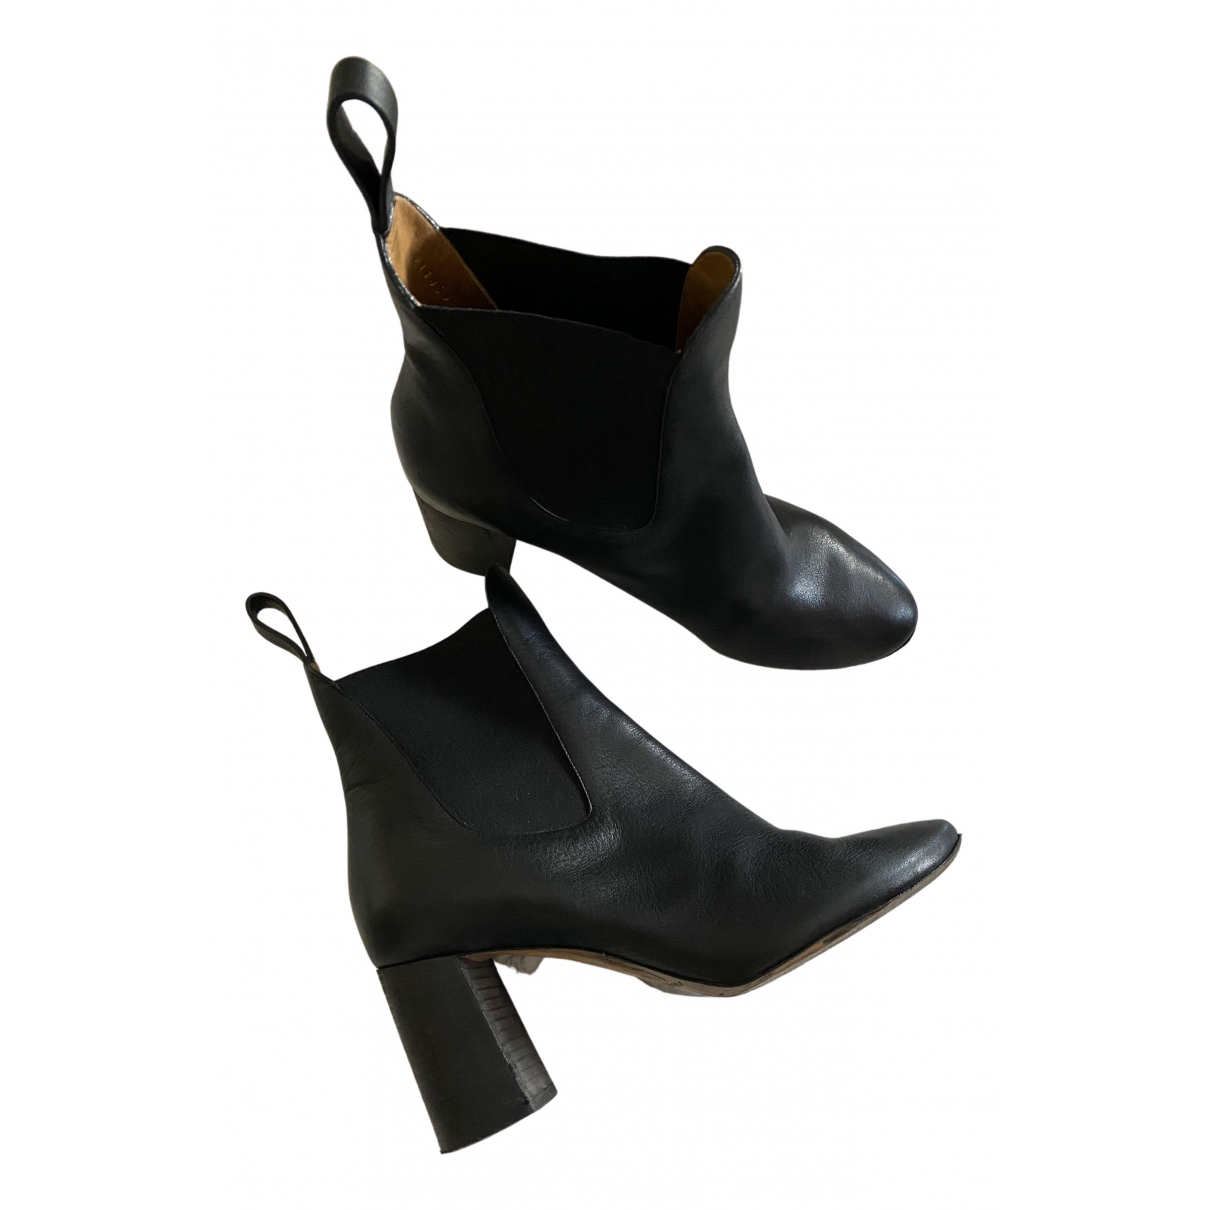 Chloé N Black Leather Ankle boots for Women 38.5 EU